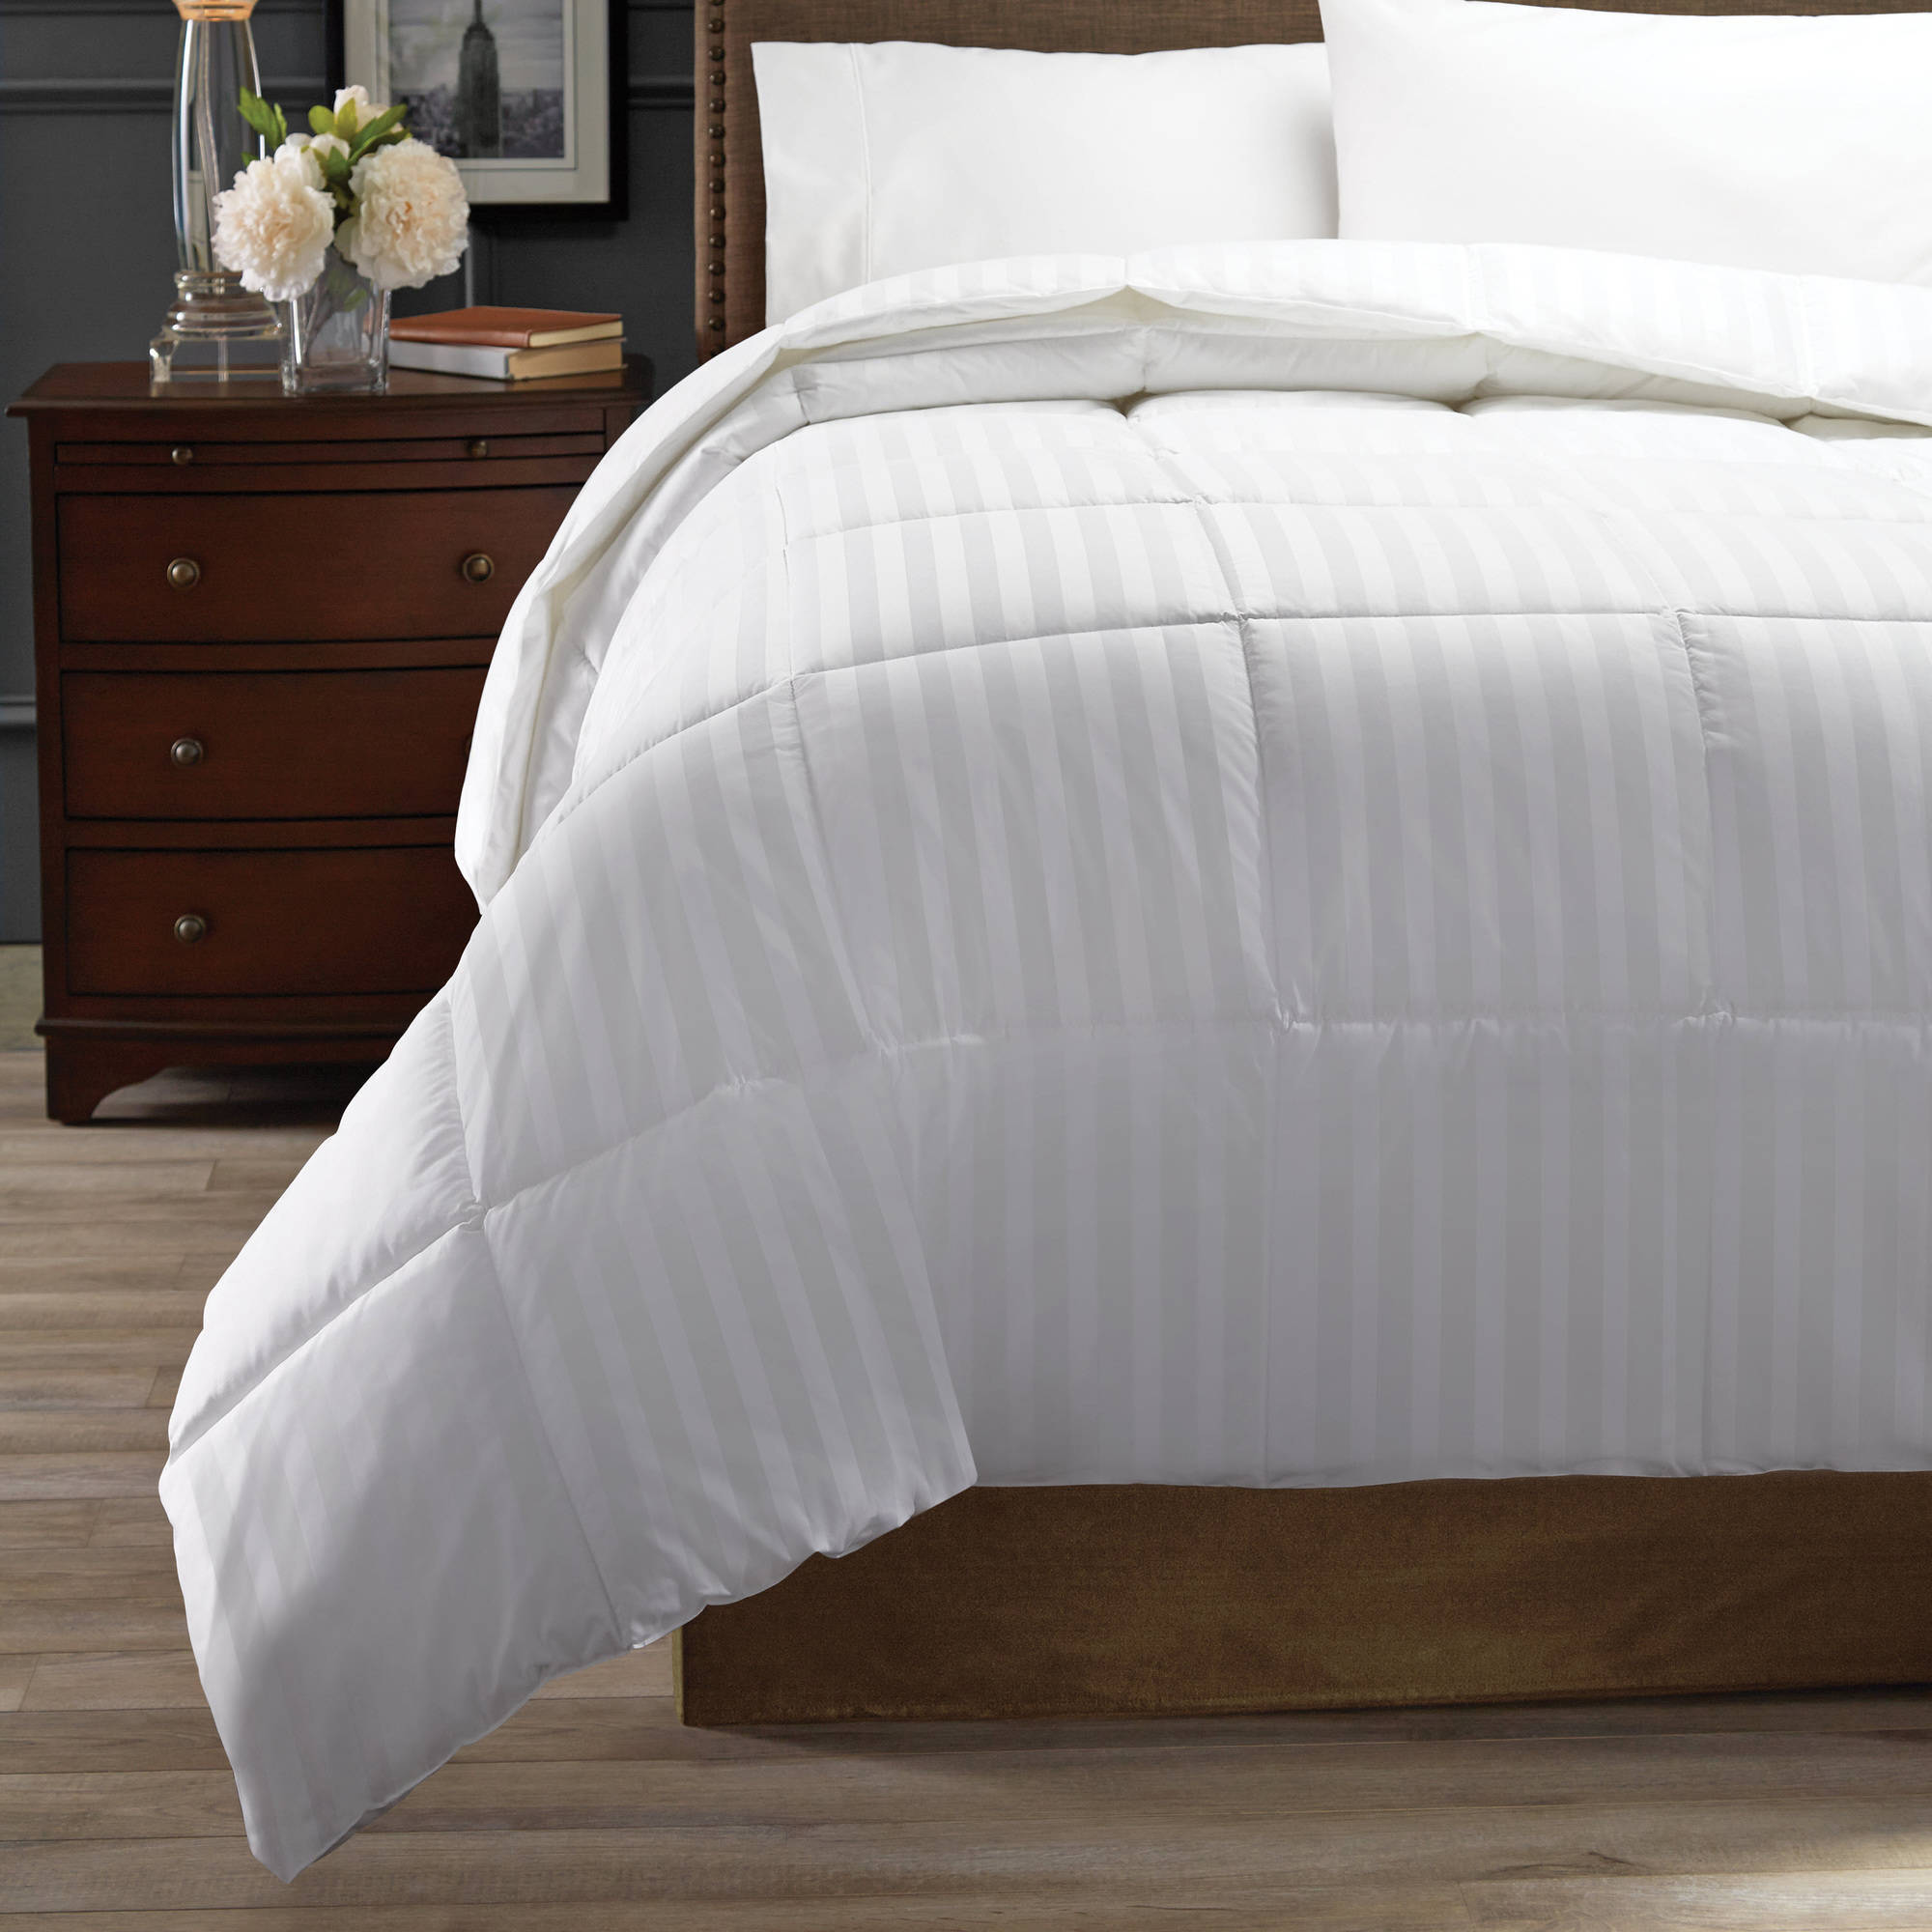 Hotel Style Medium Down Alternative Comforter, 1 Each - King